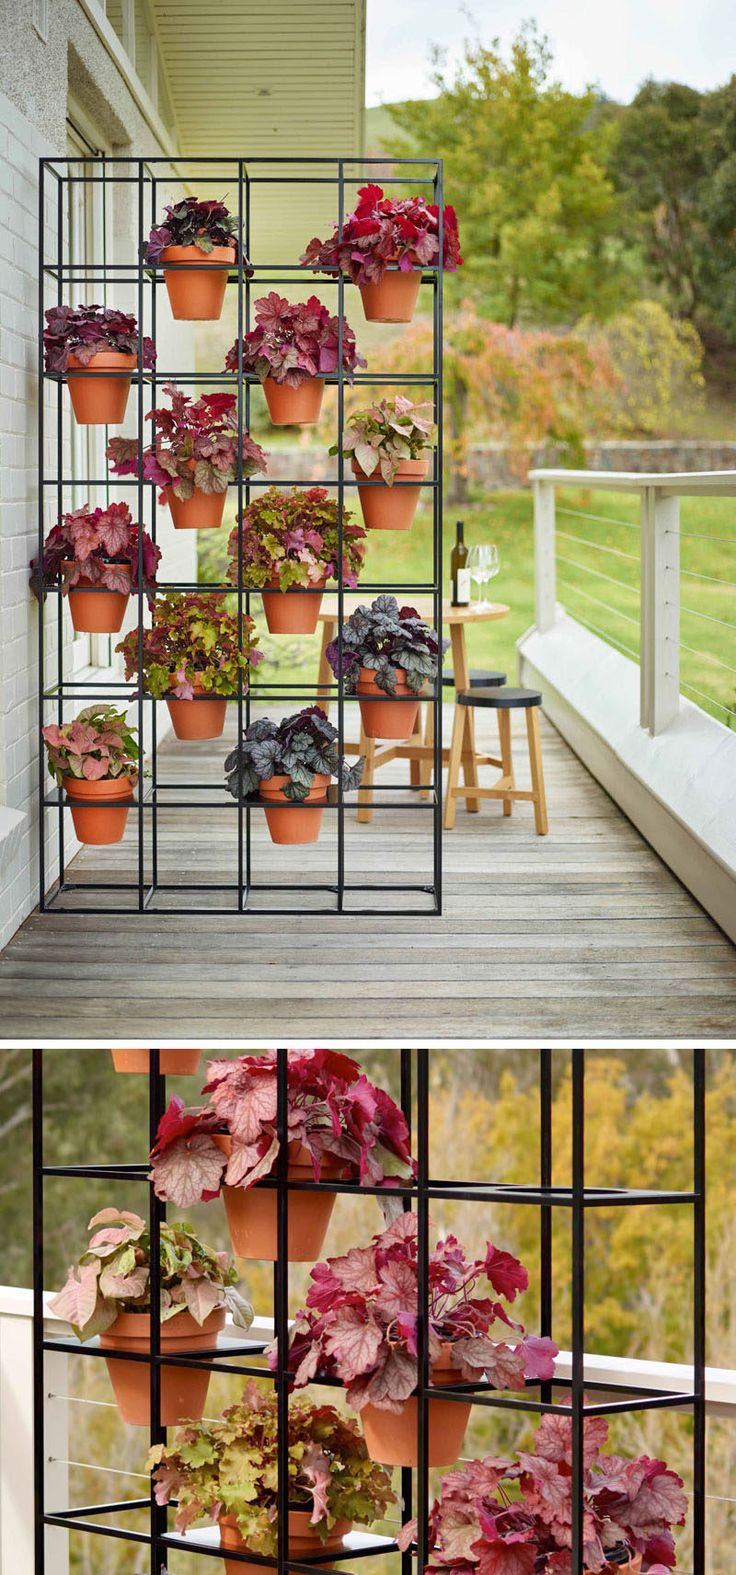 Shelving system for Schiavello by Joost Bakker / standalone room divider & vertical garden